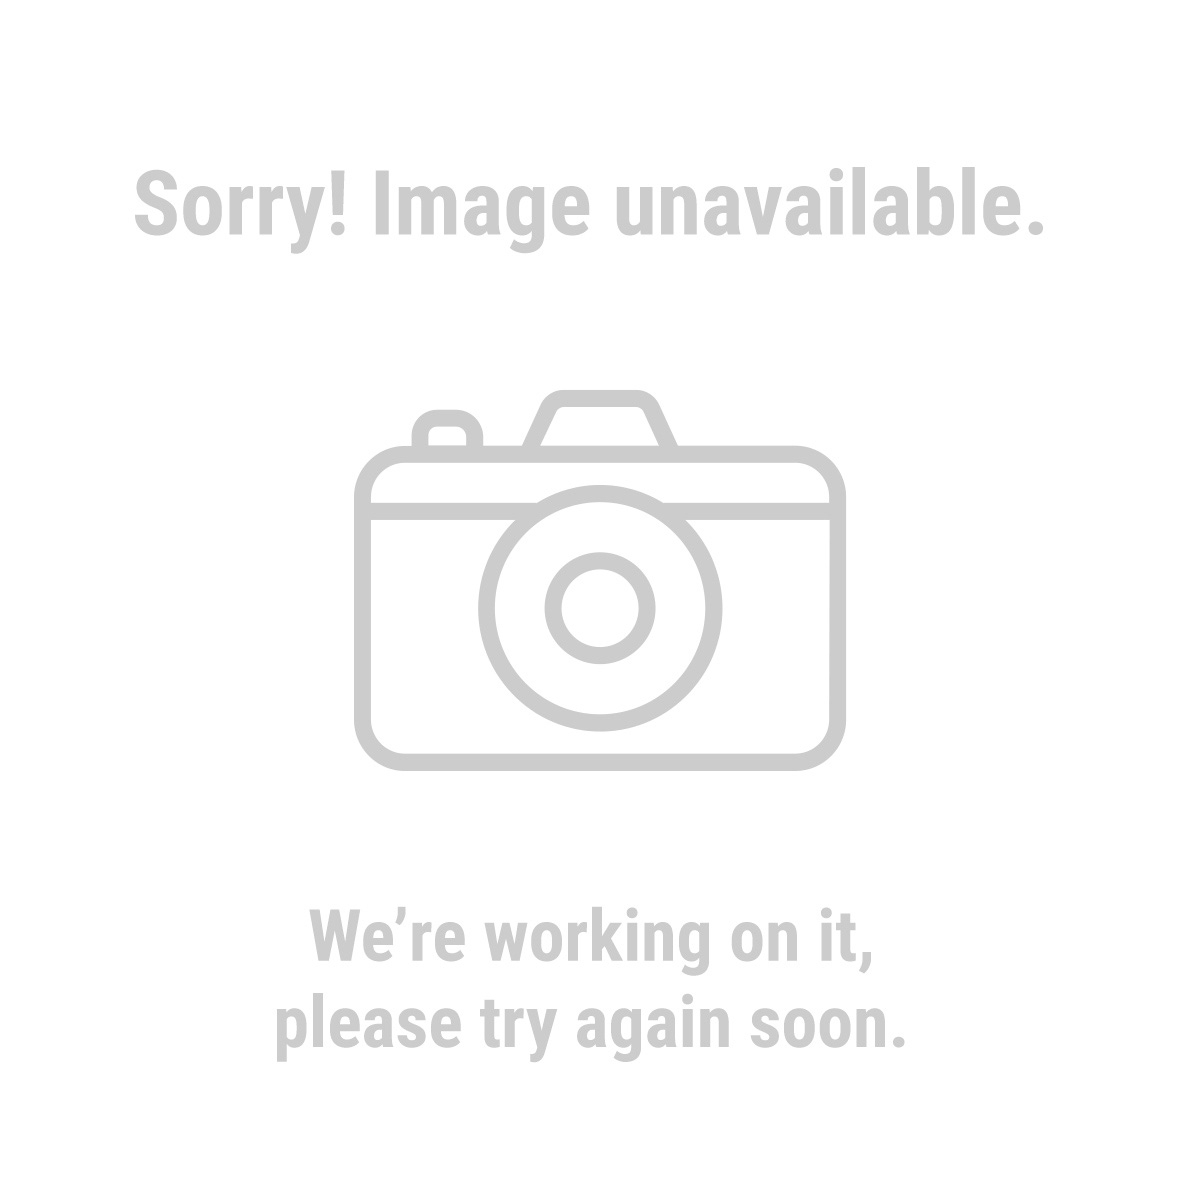 Western Safety 98858 Self-Adhesive Rubber Safety Step Mat